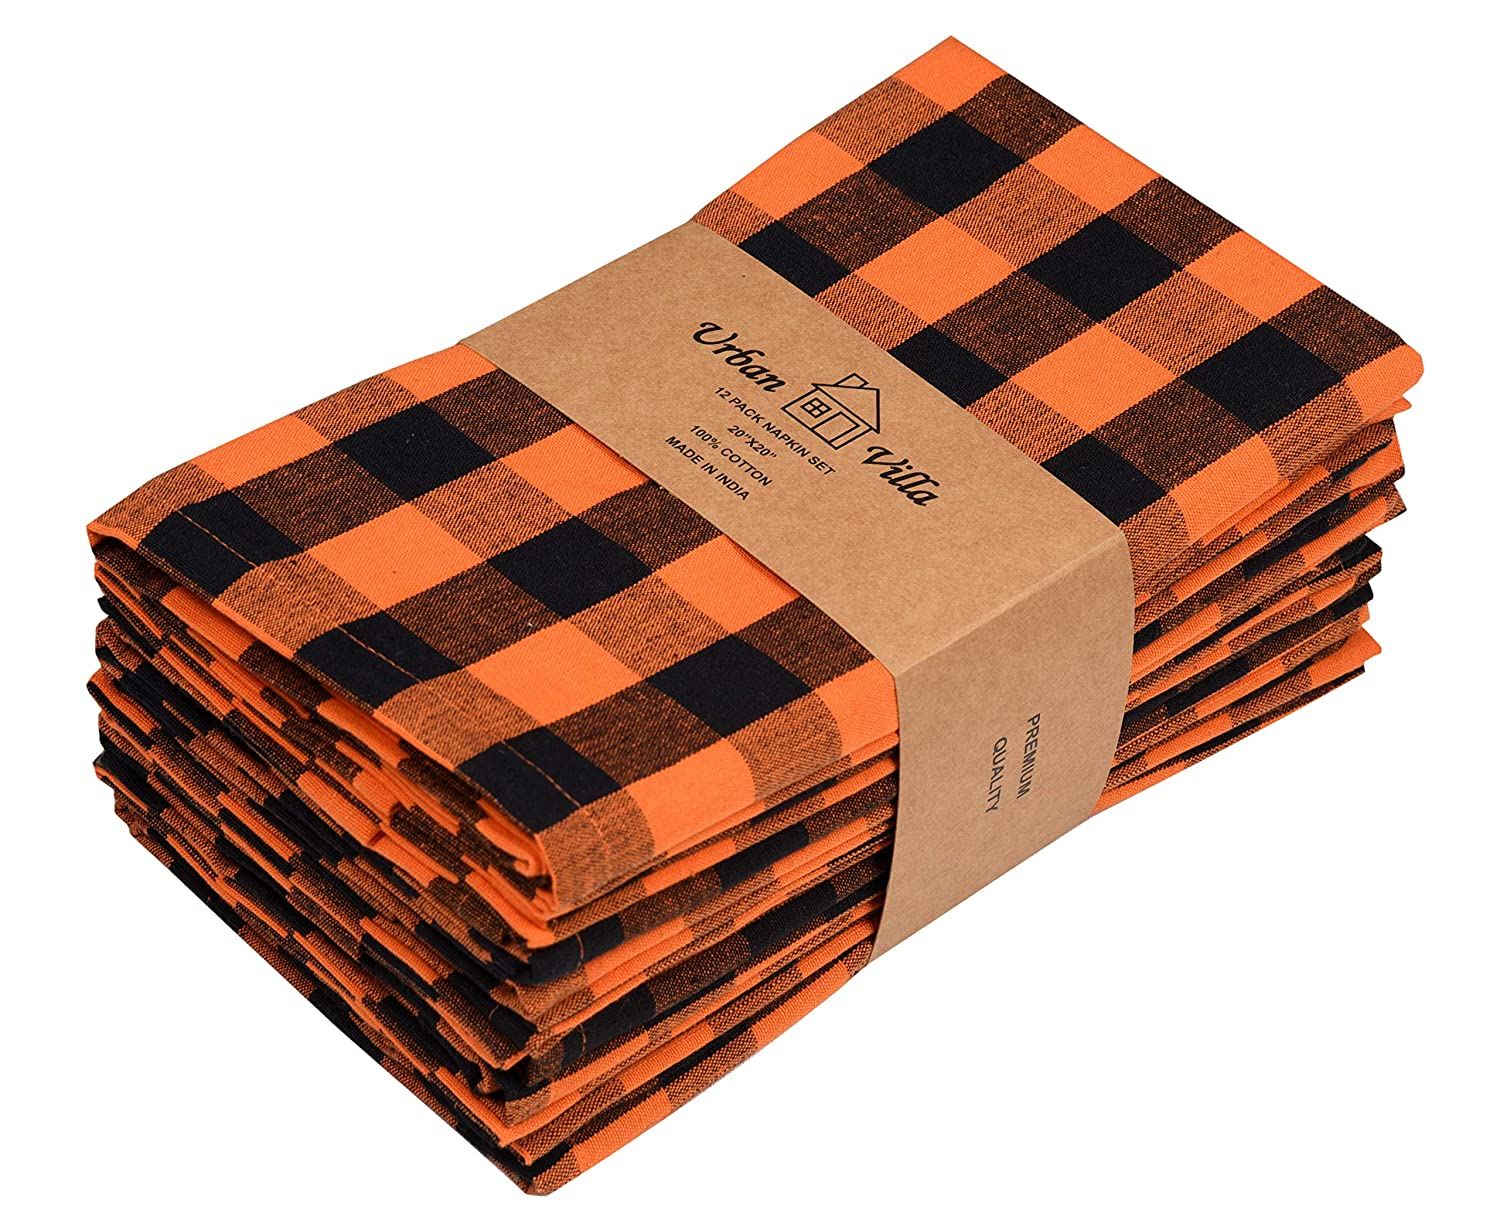 Urban Villa,Halloween Orange/Black set of12 Dinner Napkins,Everyday Use,Premium Quality,100% Cotton, Size 20x20 inches, Over sized Cloth Napkins with Mitered Corners, Ultra Soft, Durable Hotel Quality